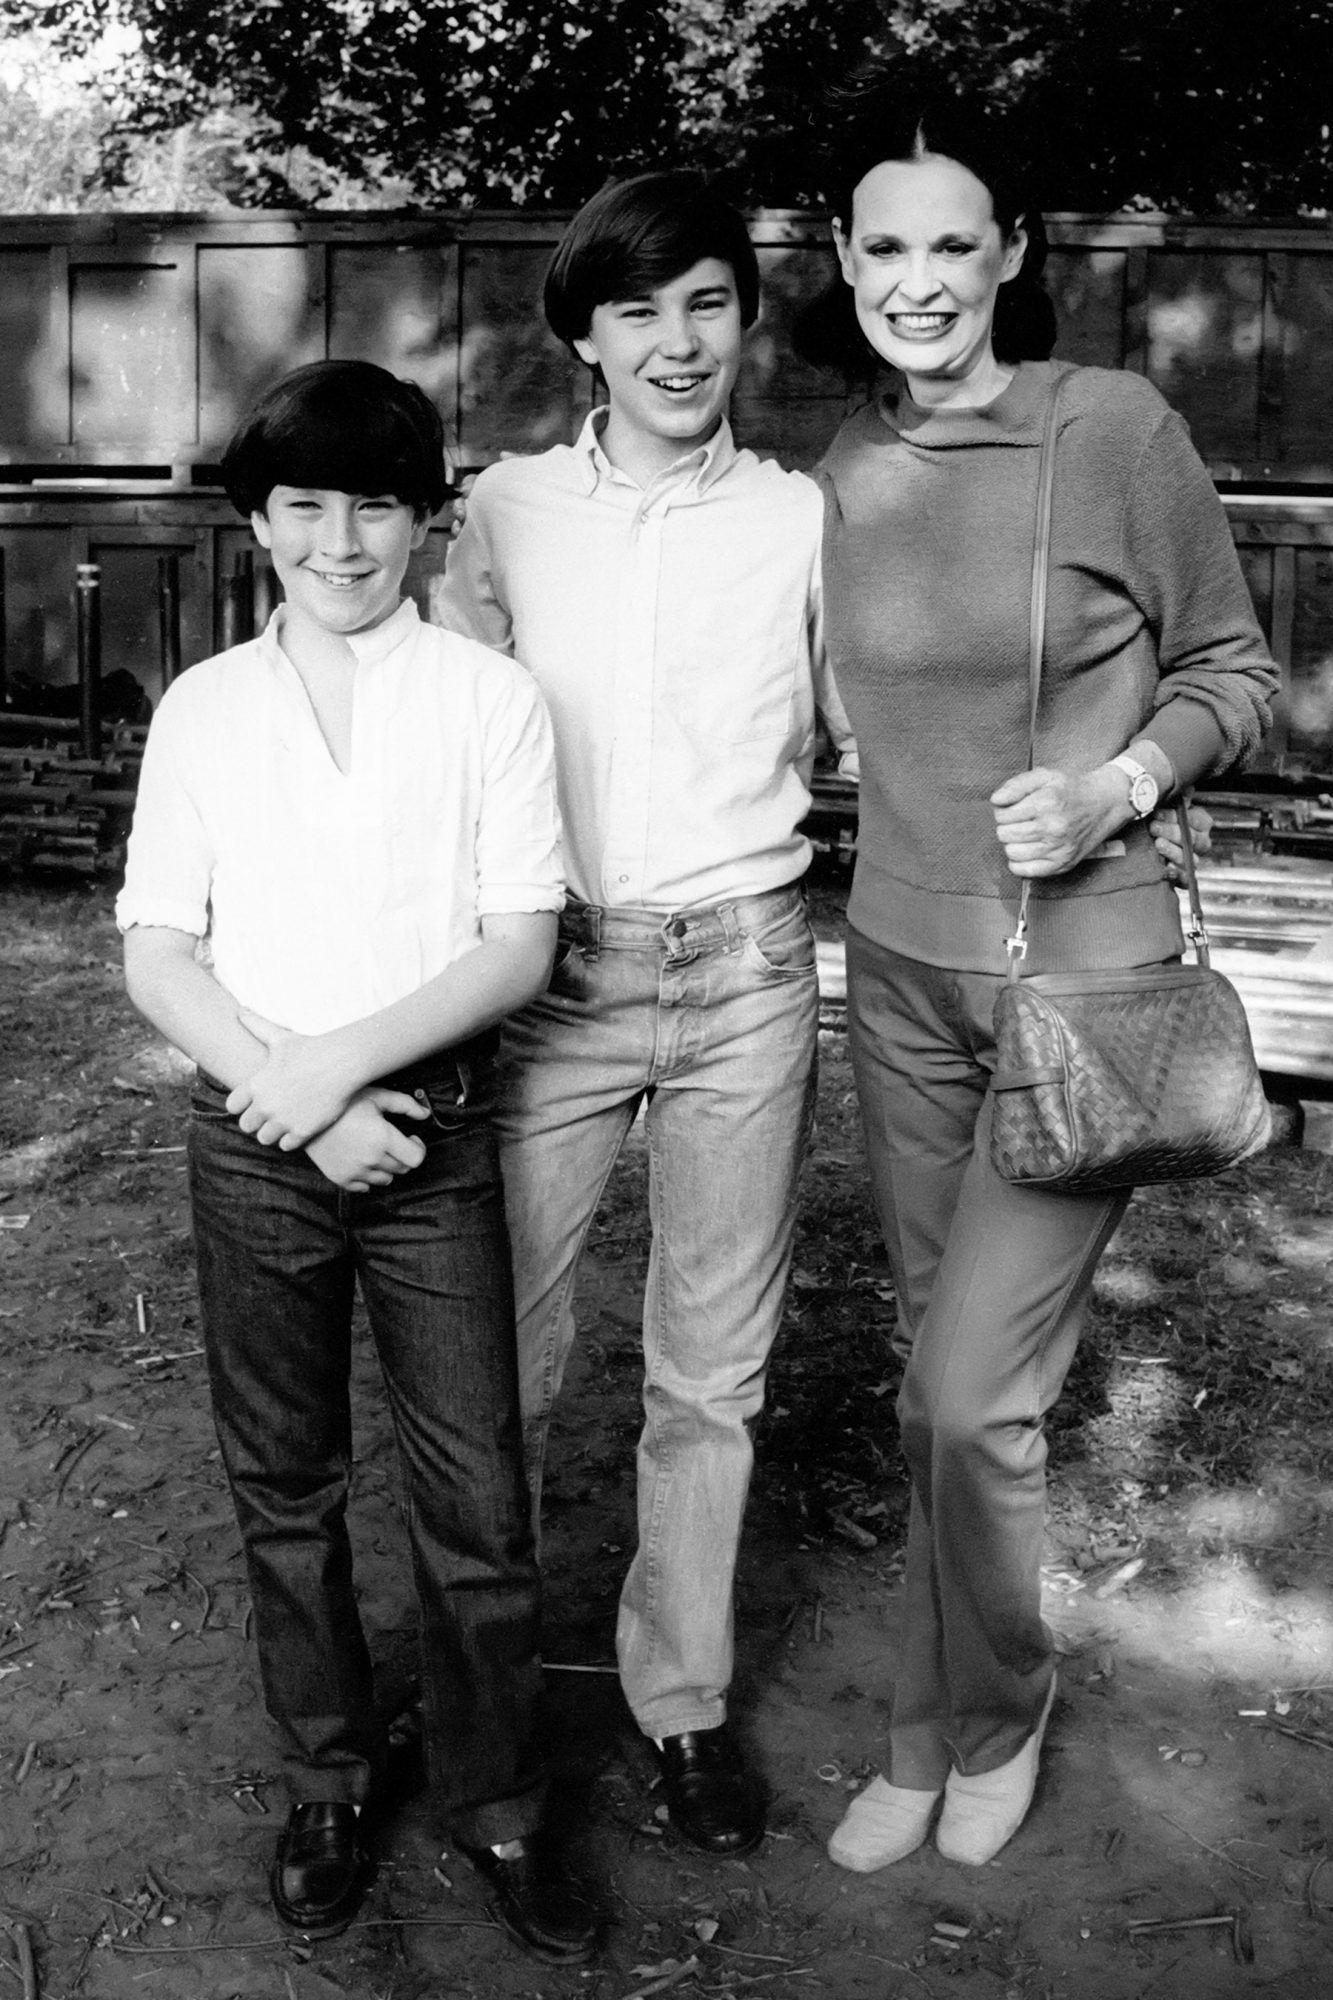 Gloria Vanderbilt and sons Anderson Cooper & Carter Cooper